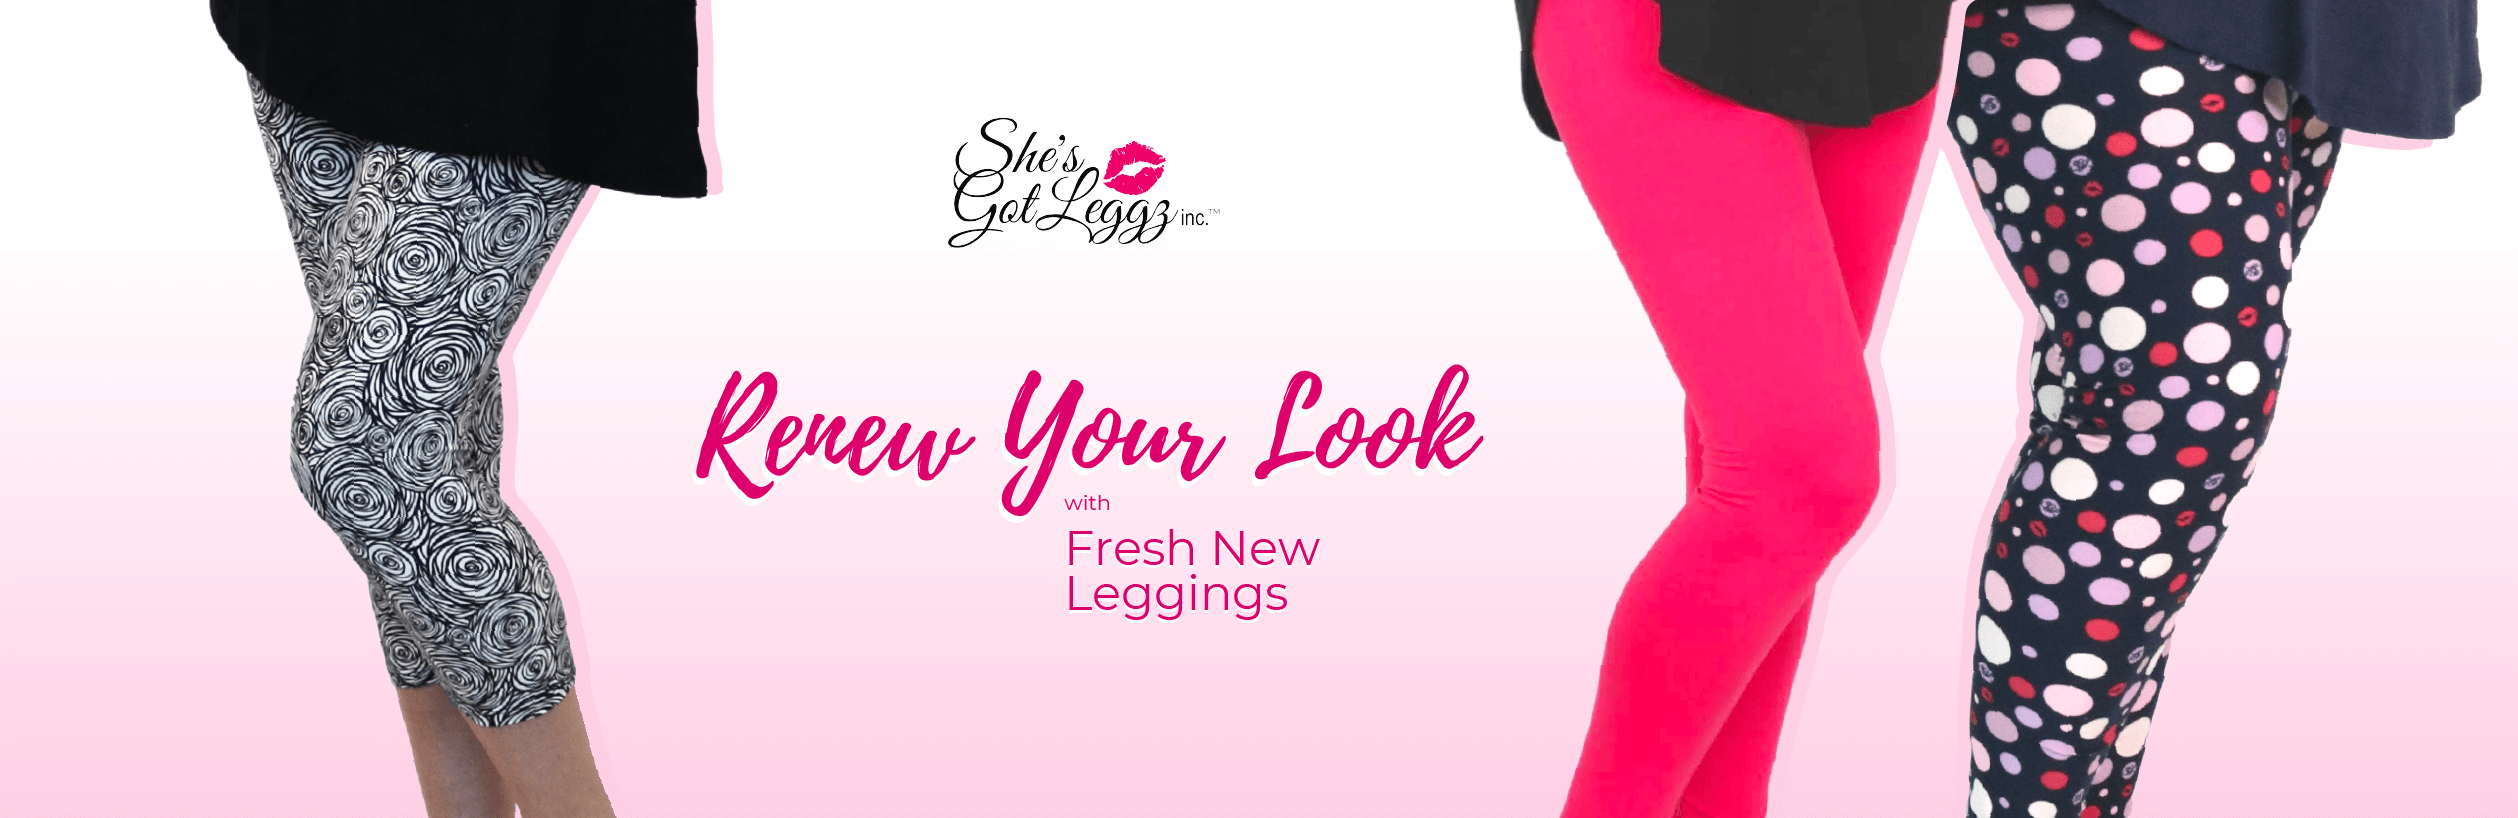 She's Got Leggz New Releases Leggings, Tops, and Accessories